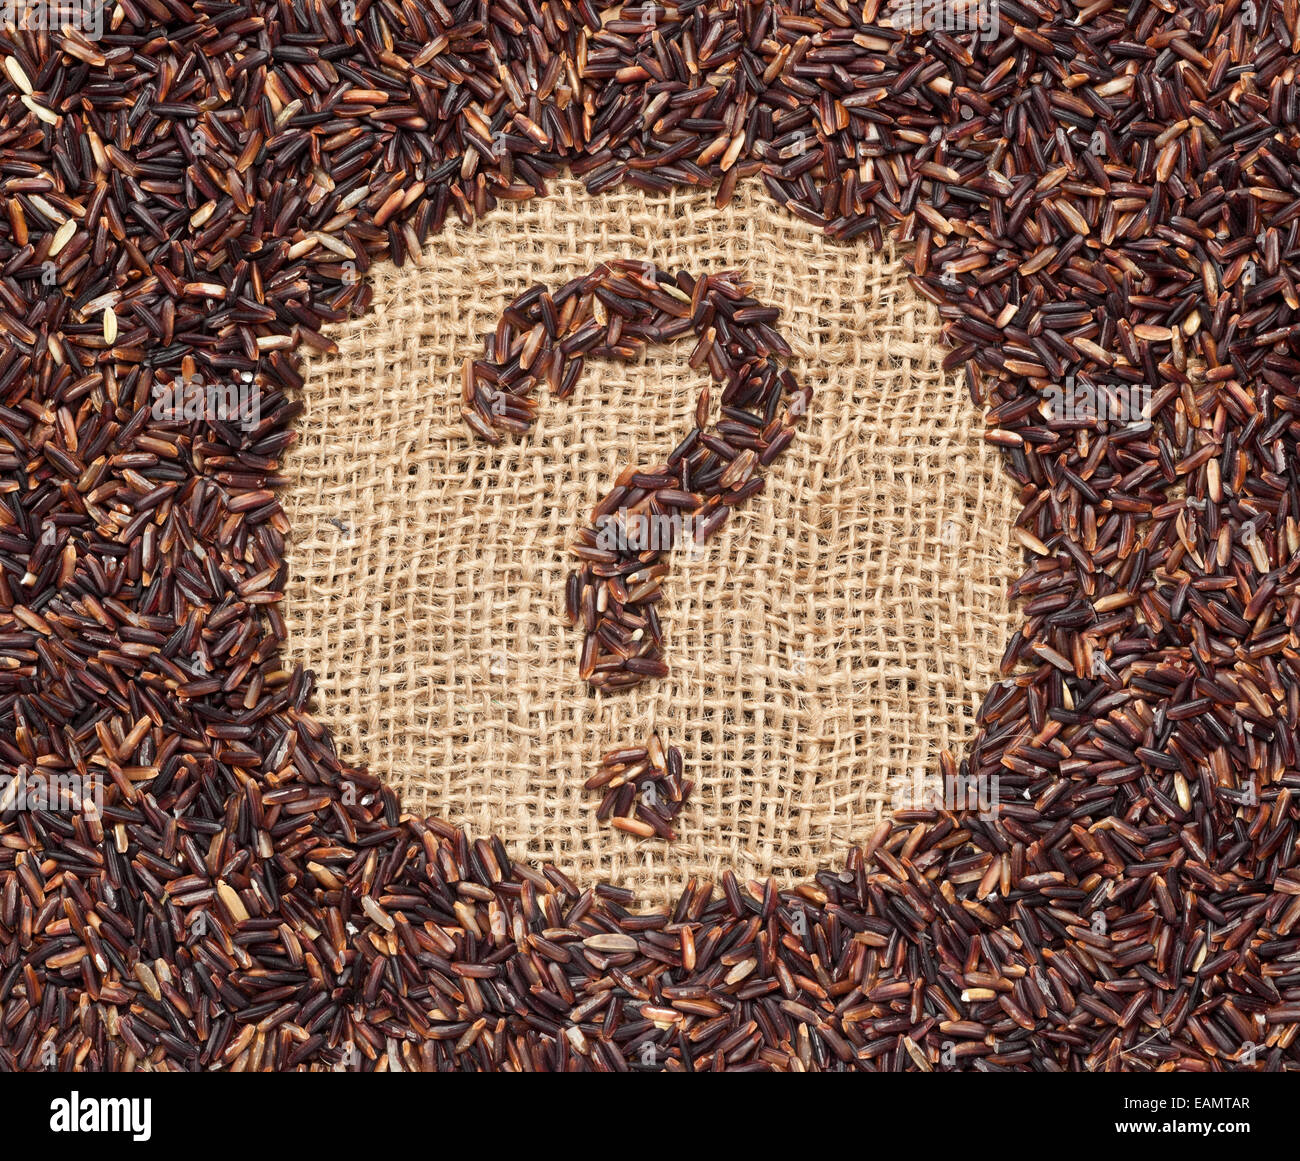 Red rice forming a question mark on burlap fabric - Stock Image